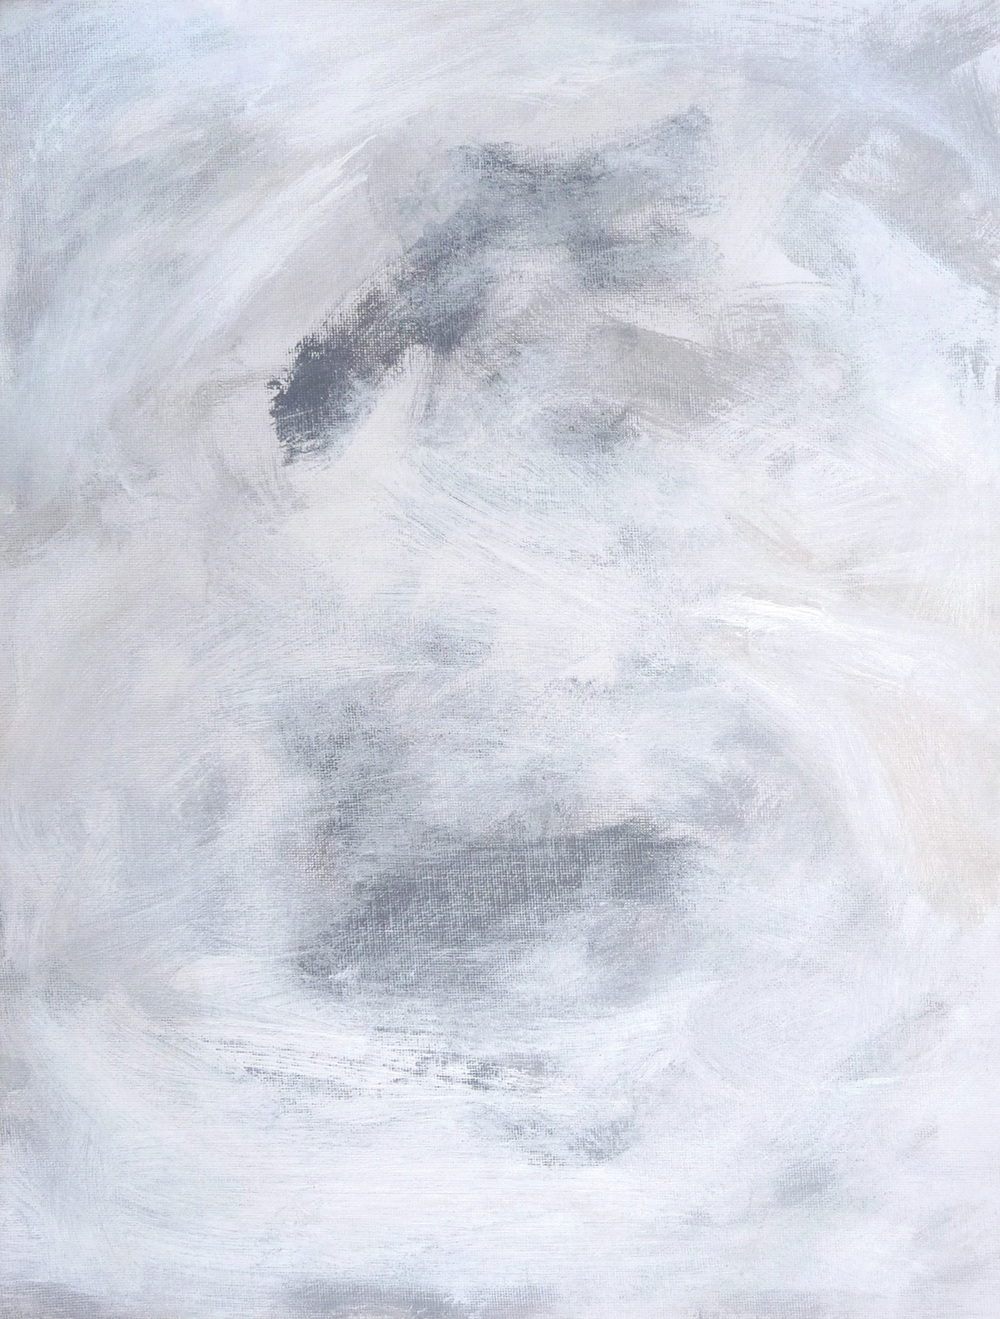 Whiteout    ,   2016. Acrylic on canvas. 16 x 12 inches (40.6 x 30.5 cm)